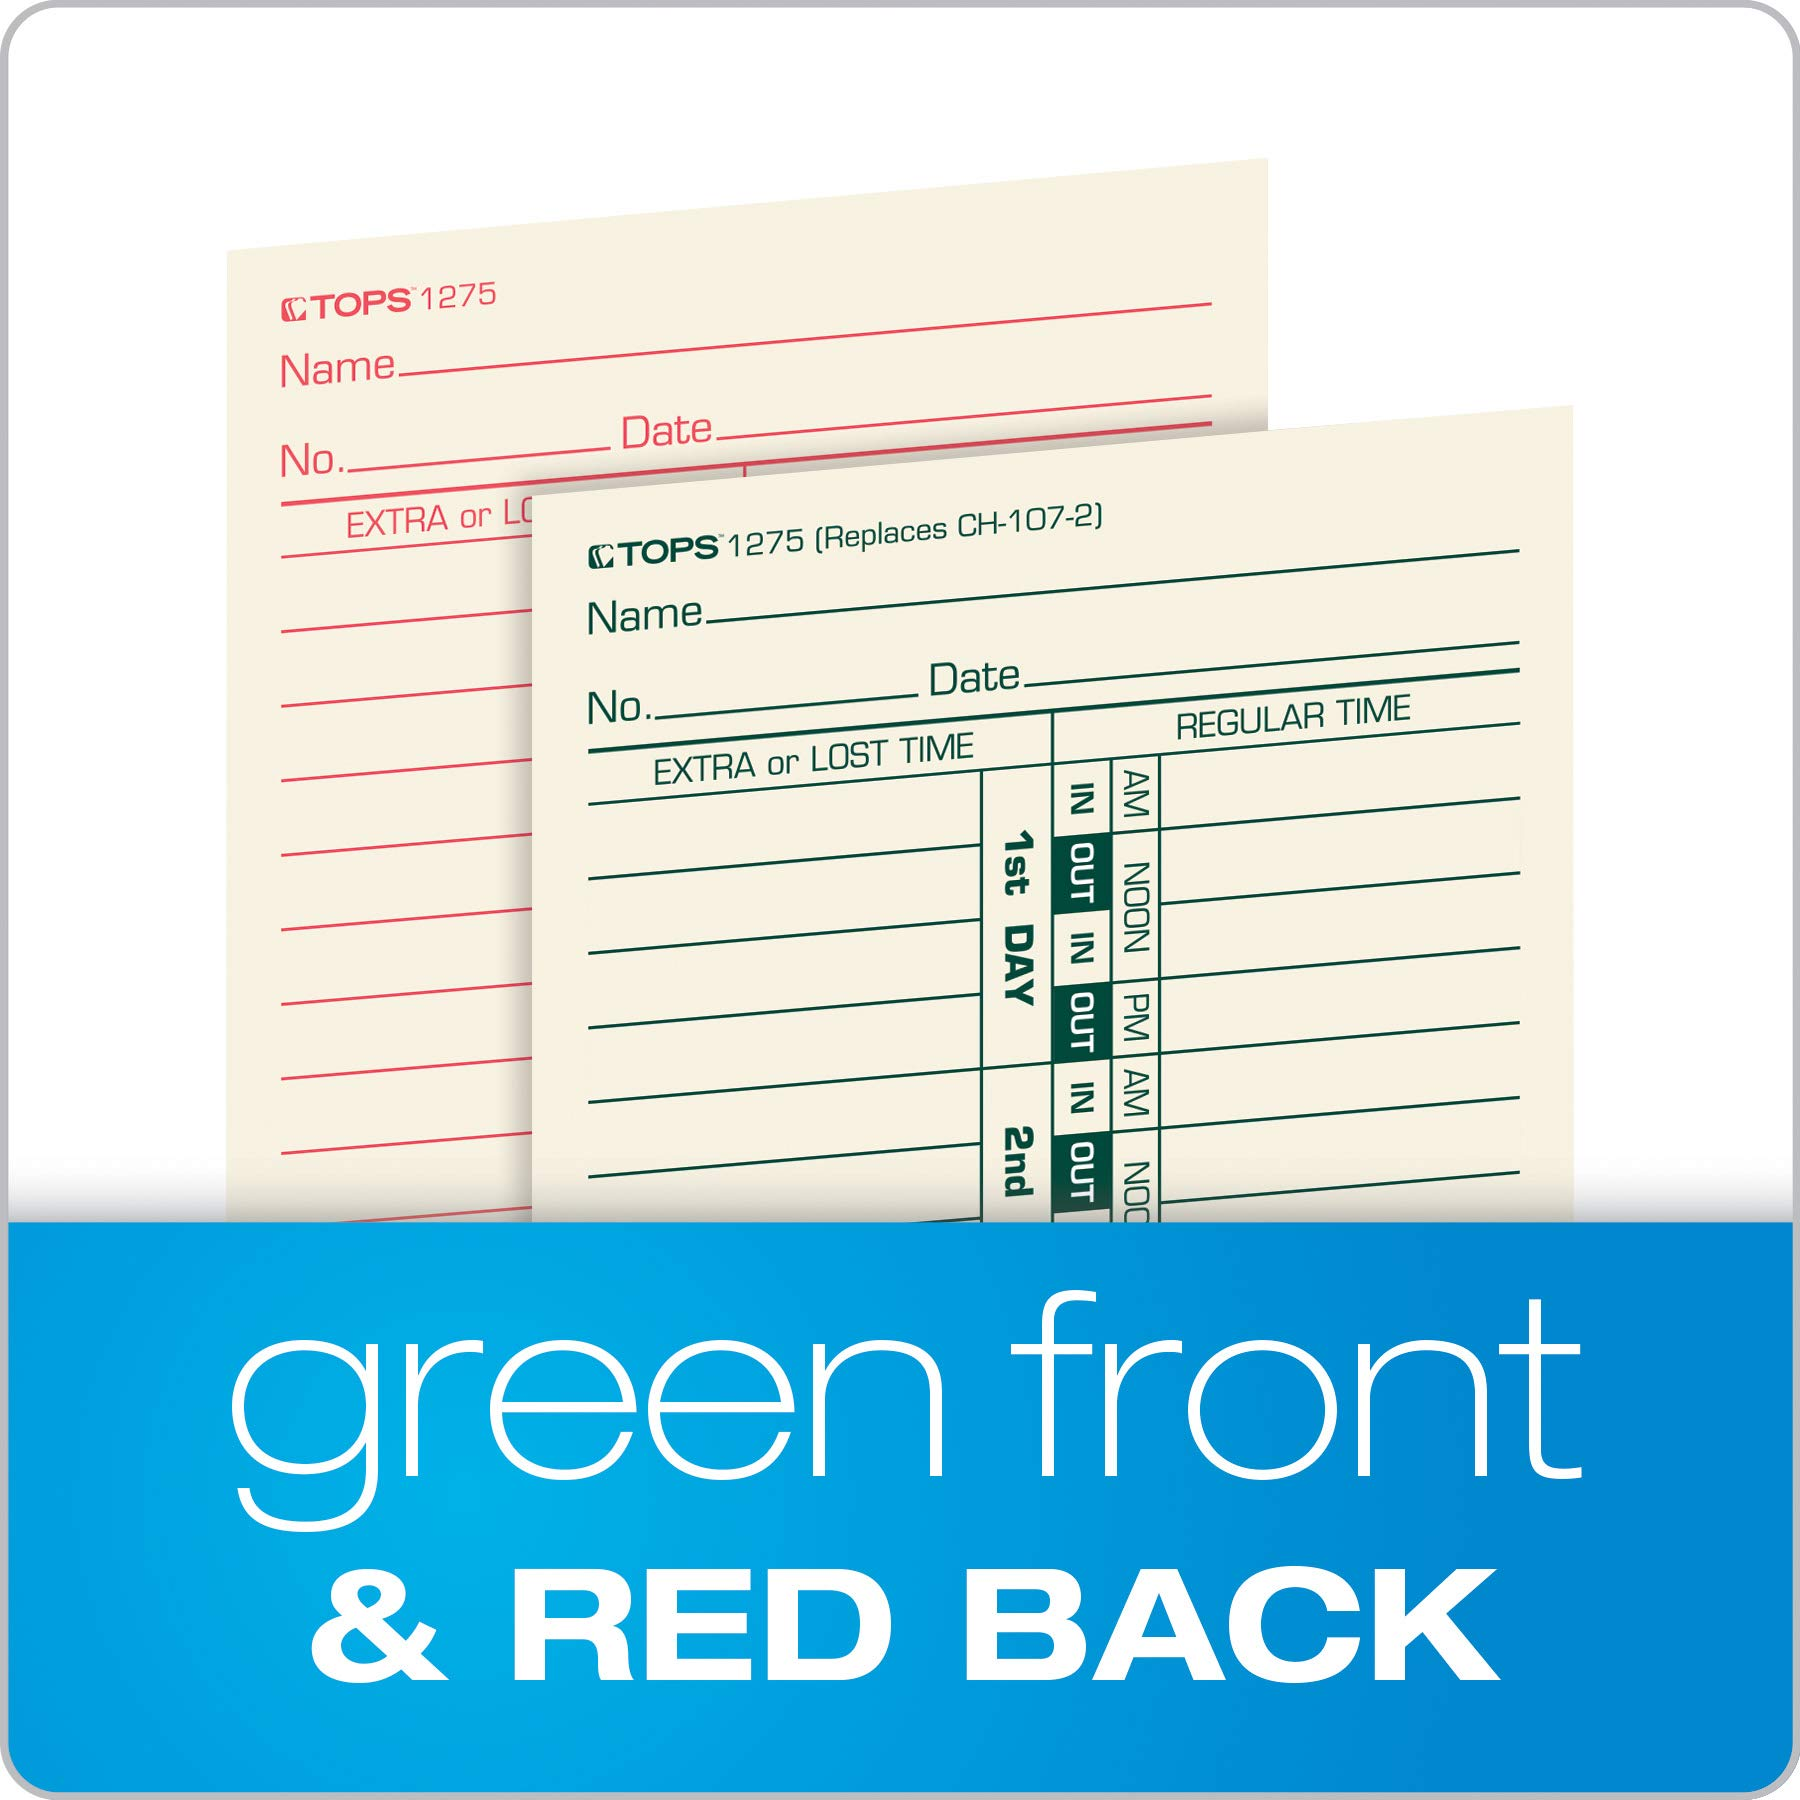 TOPS Time Cards, Bi-Weekly, 2-Sided, Numbered Days, 3-1/2'' x 9'', Manila, Green/Red Print, 500-Count (1275) by Tops (Image #4)